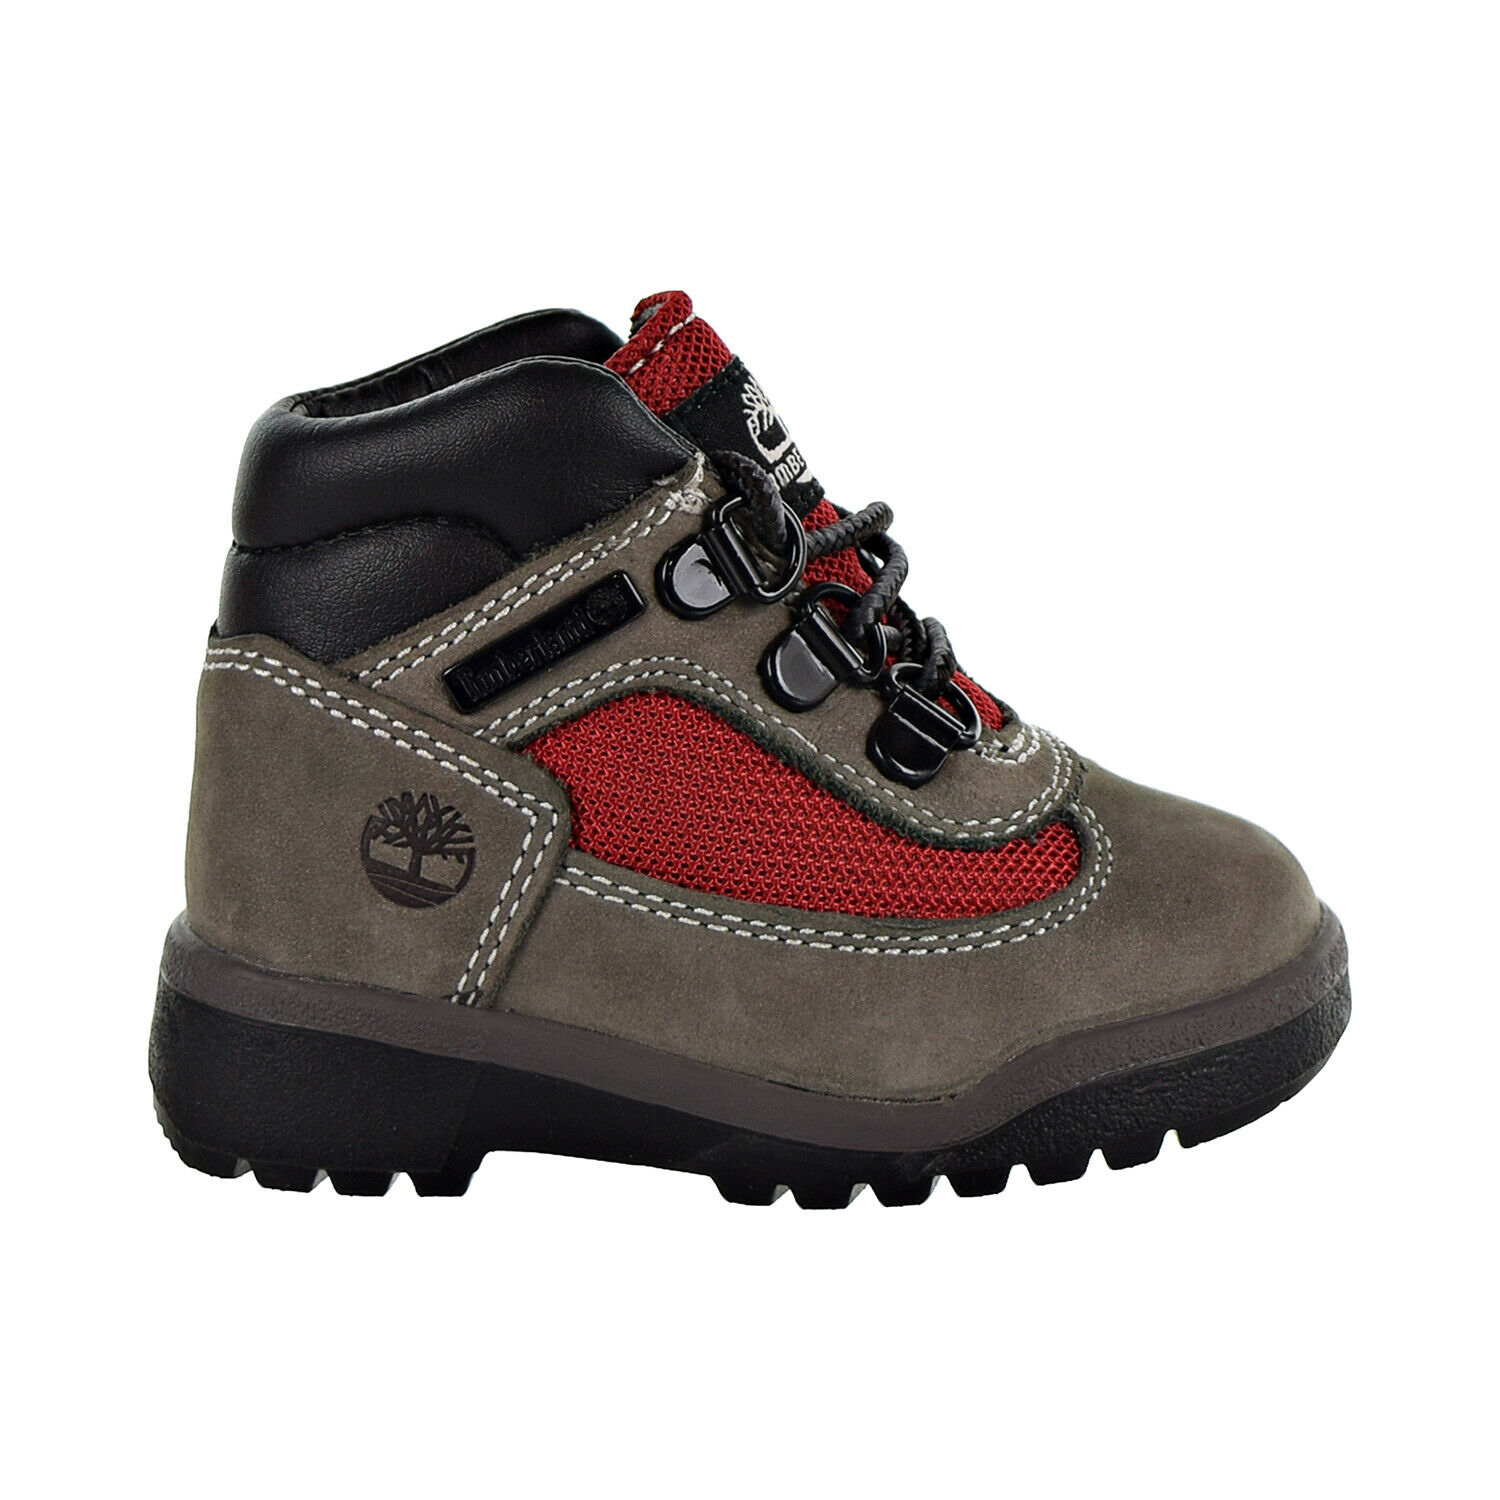 Timberland Field Boot L-F Mid Toddler's Shoes Grey-Red TB0A1ROS